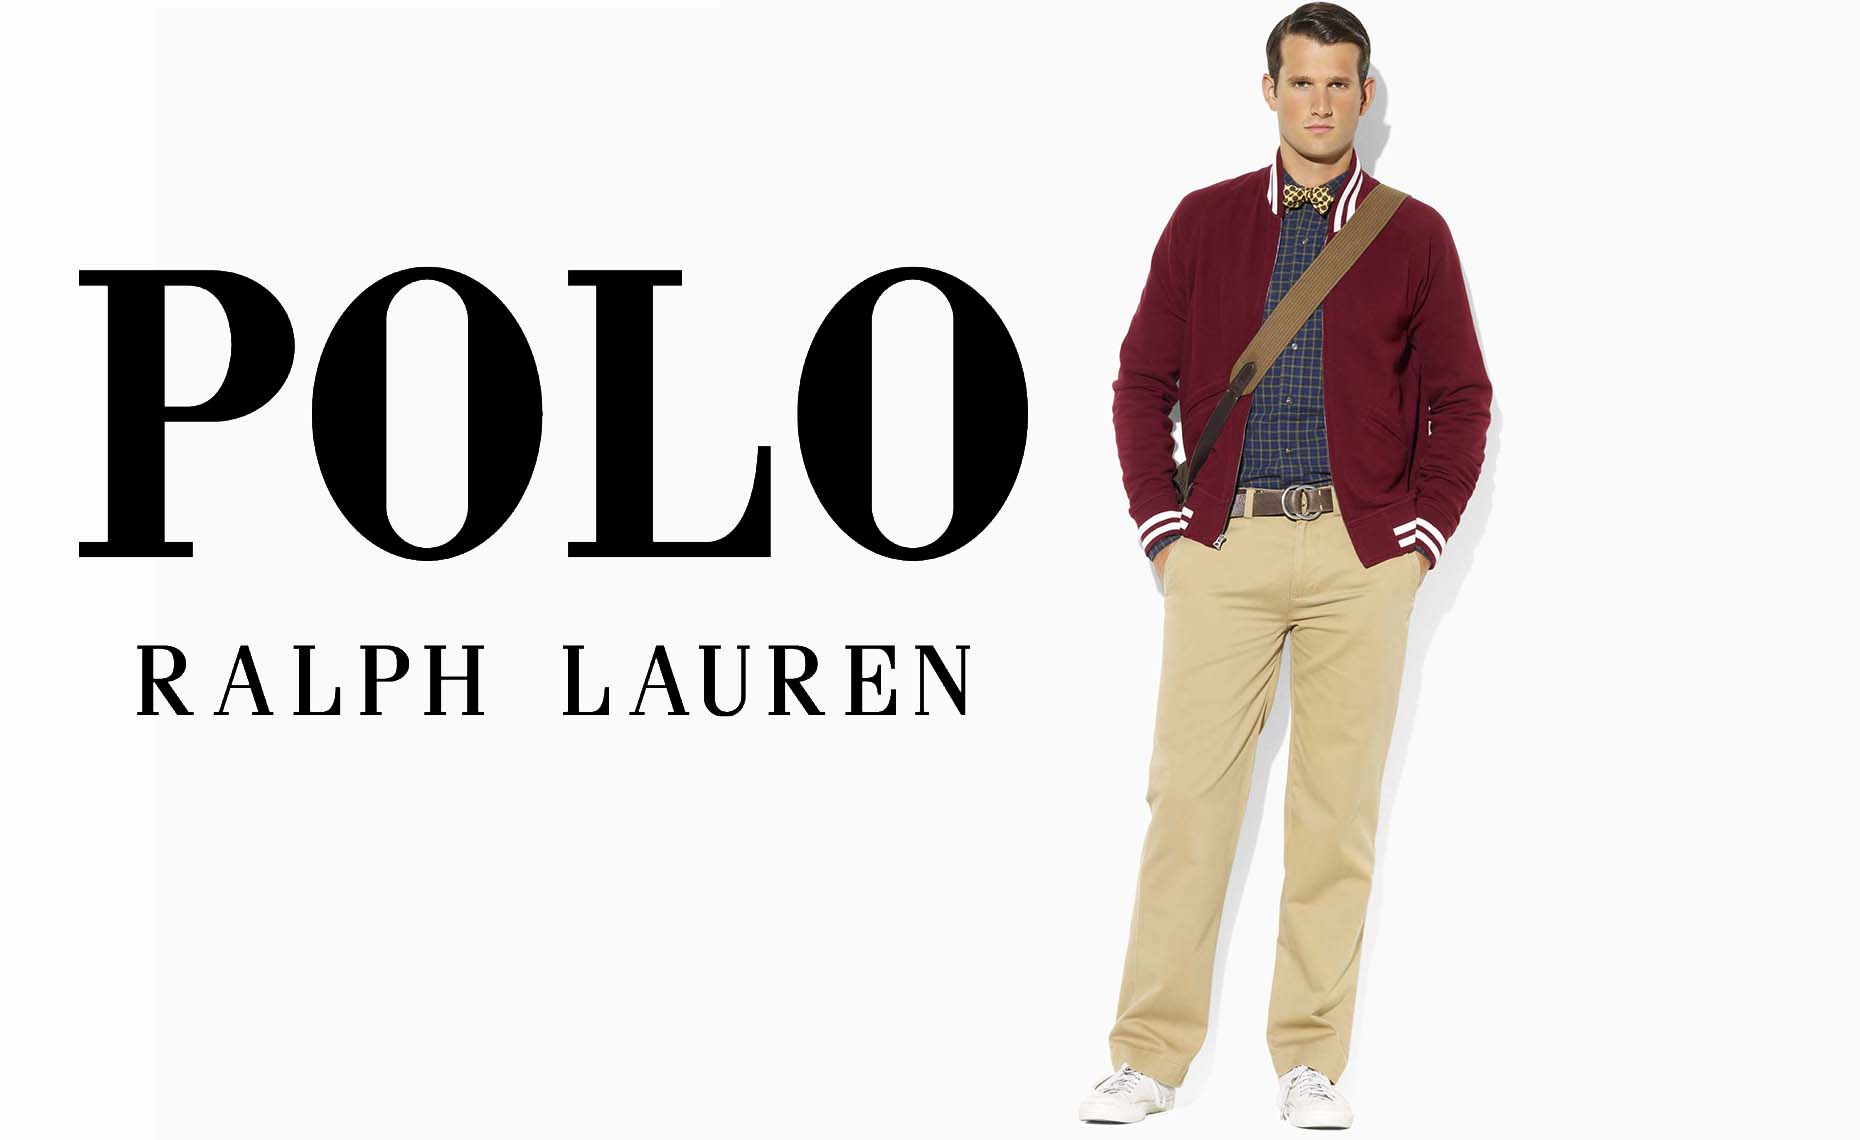 Keith-Phhotographer_POLO_RALPH_LAUREN